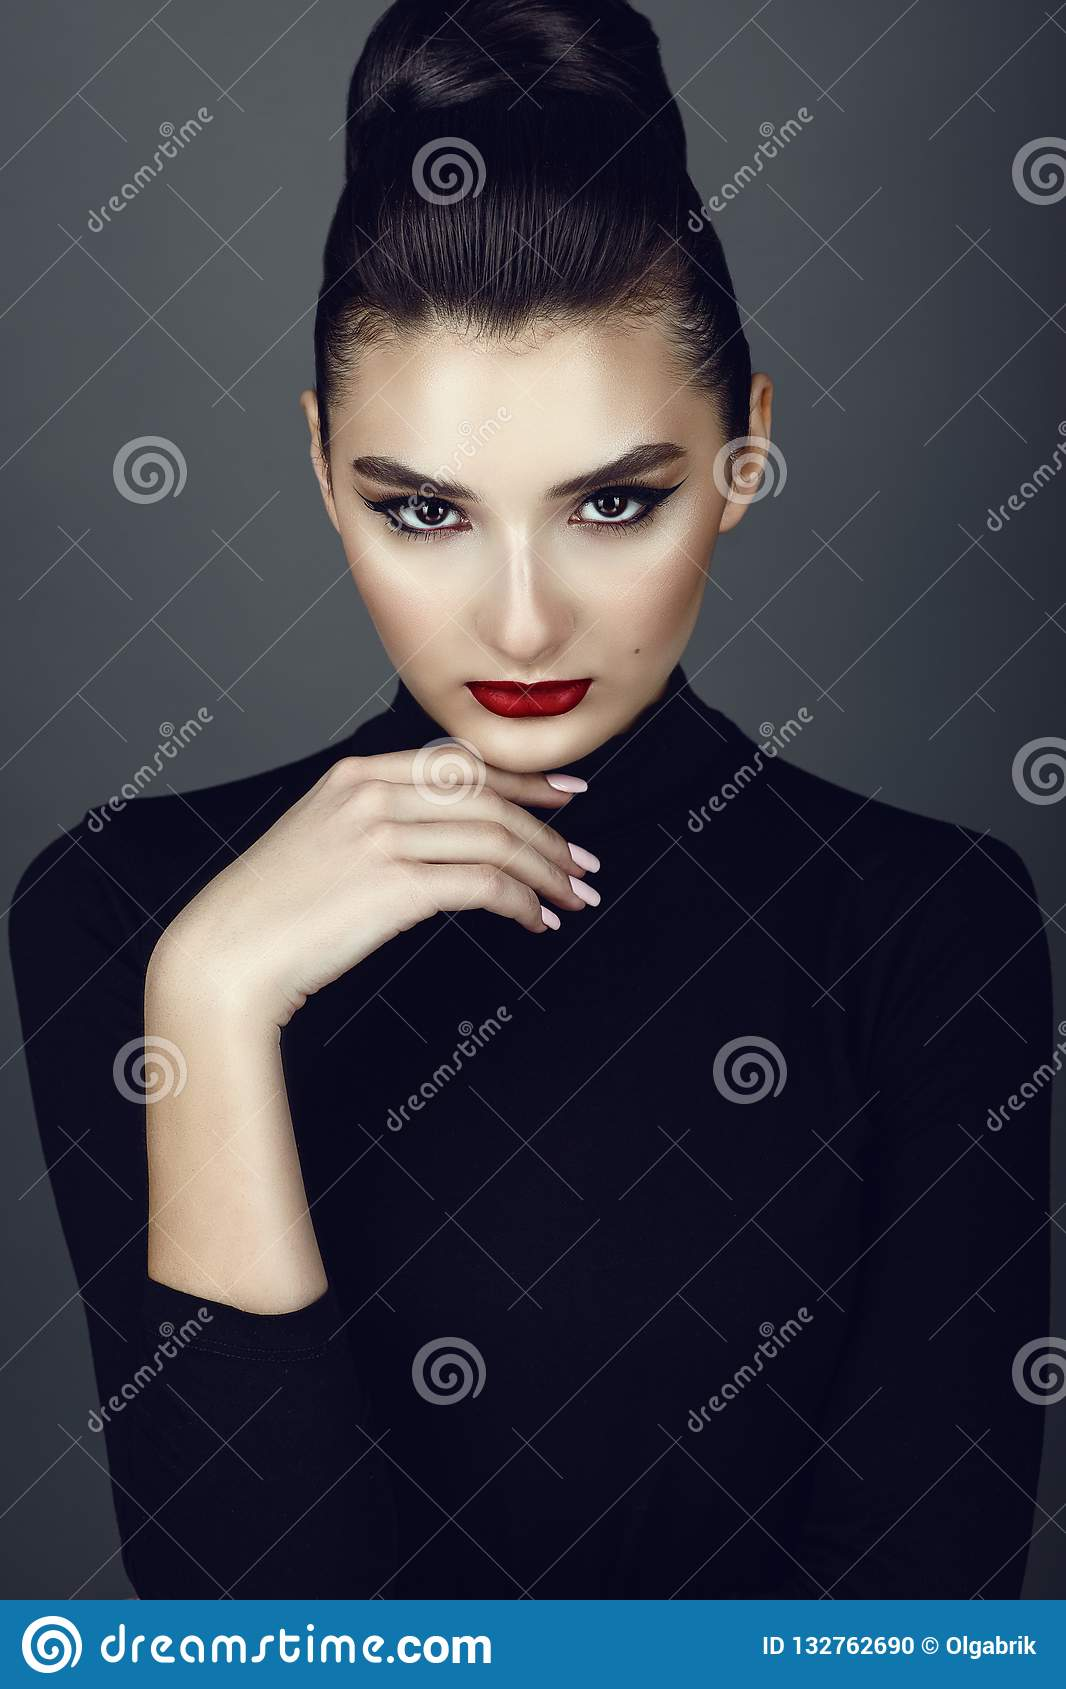 Beautiful dark haired model with perfect make up and her hair scraped back into a high bun leaning her chin on the hand